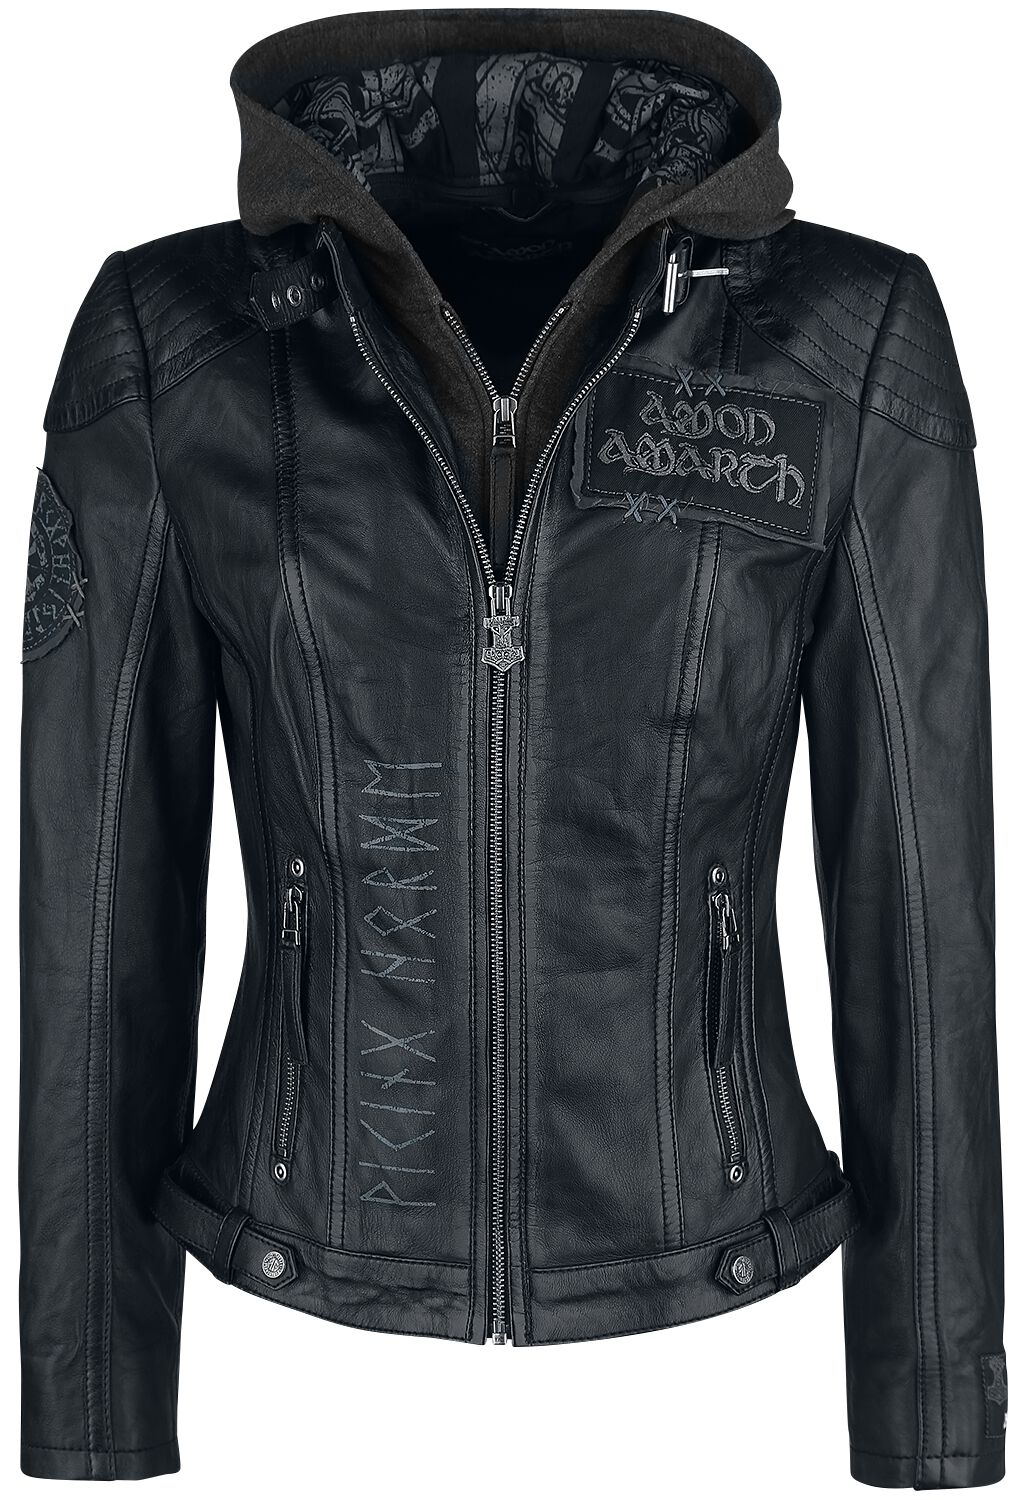 Image of   Amon Amarth EMP Signature Collection Girlie læderjakke sort